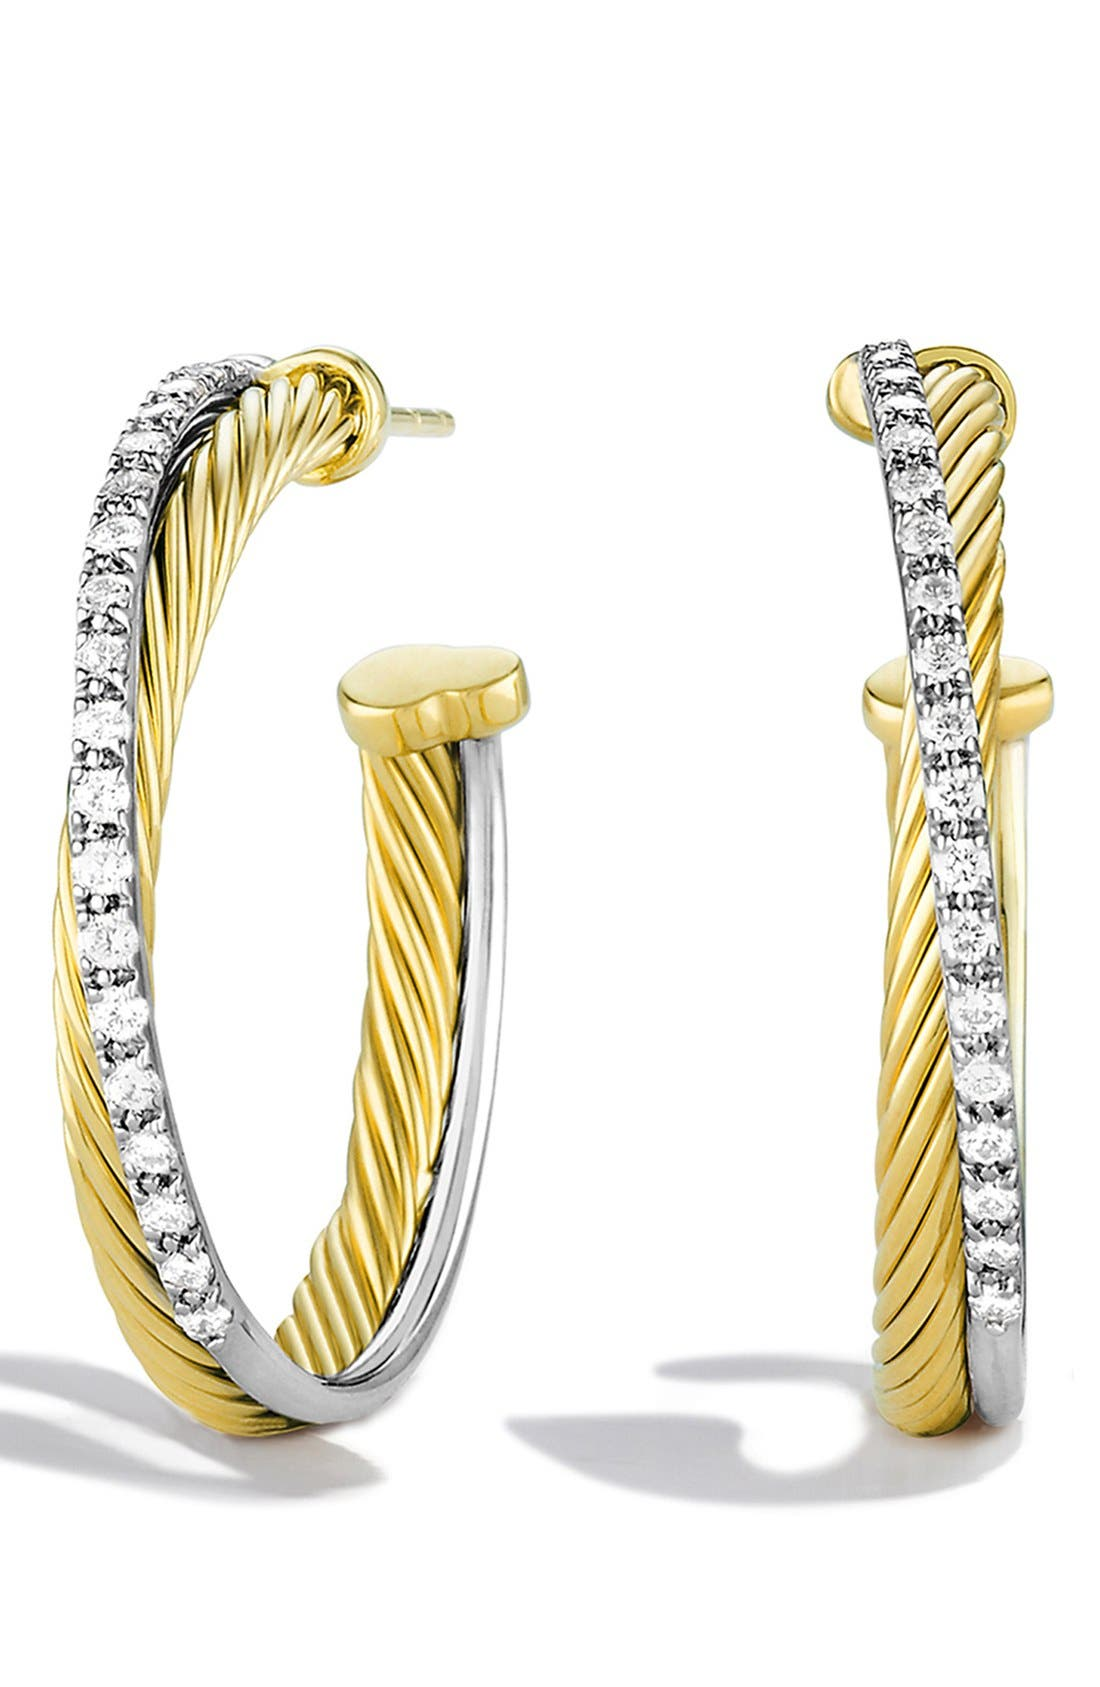 Alternate Image 1 Selected - David Yurman 'Crossover' Medium Hoop Earrings with Diamonds in Gold